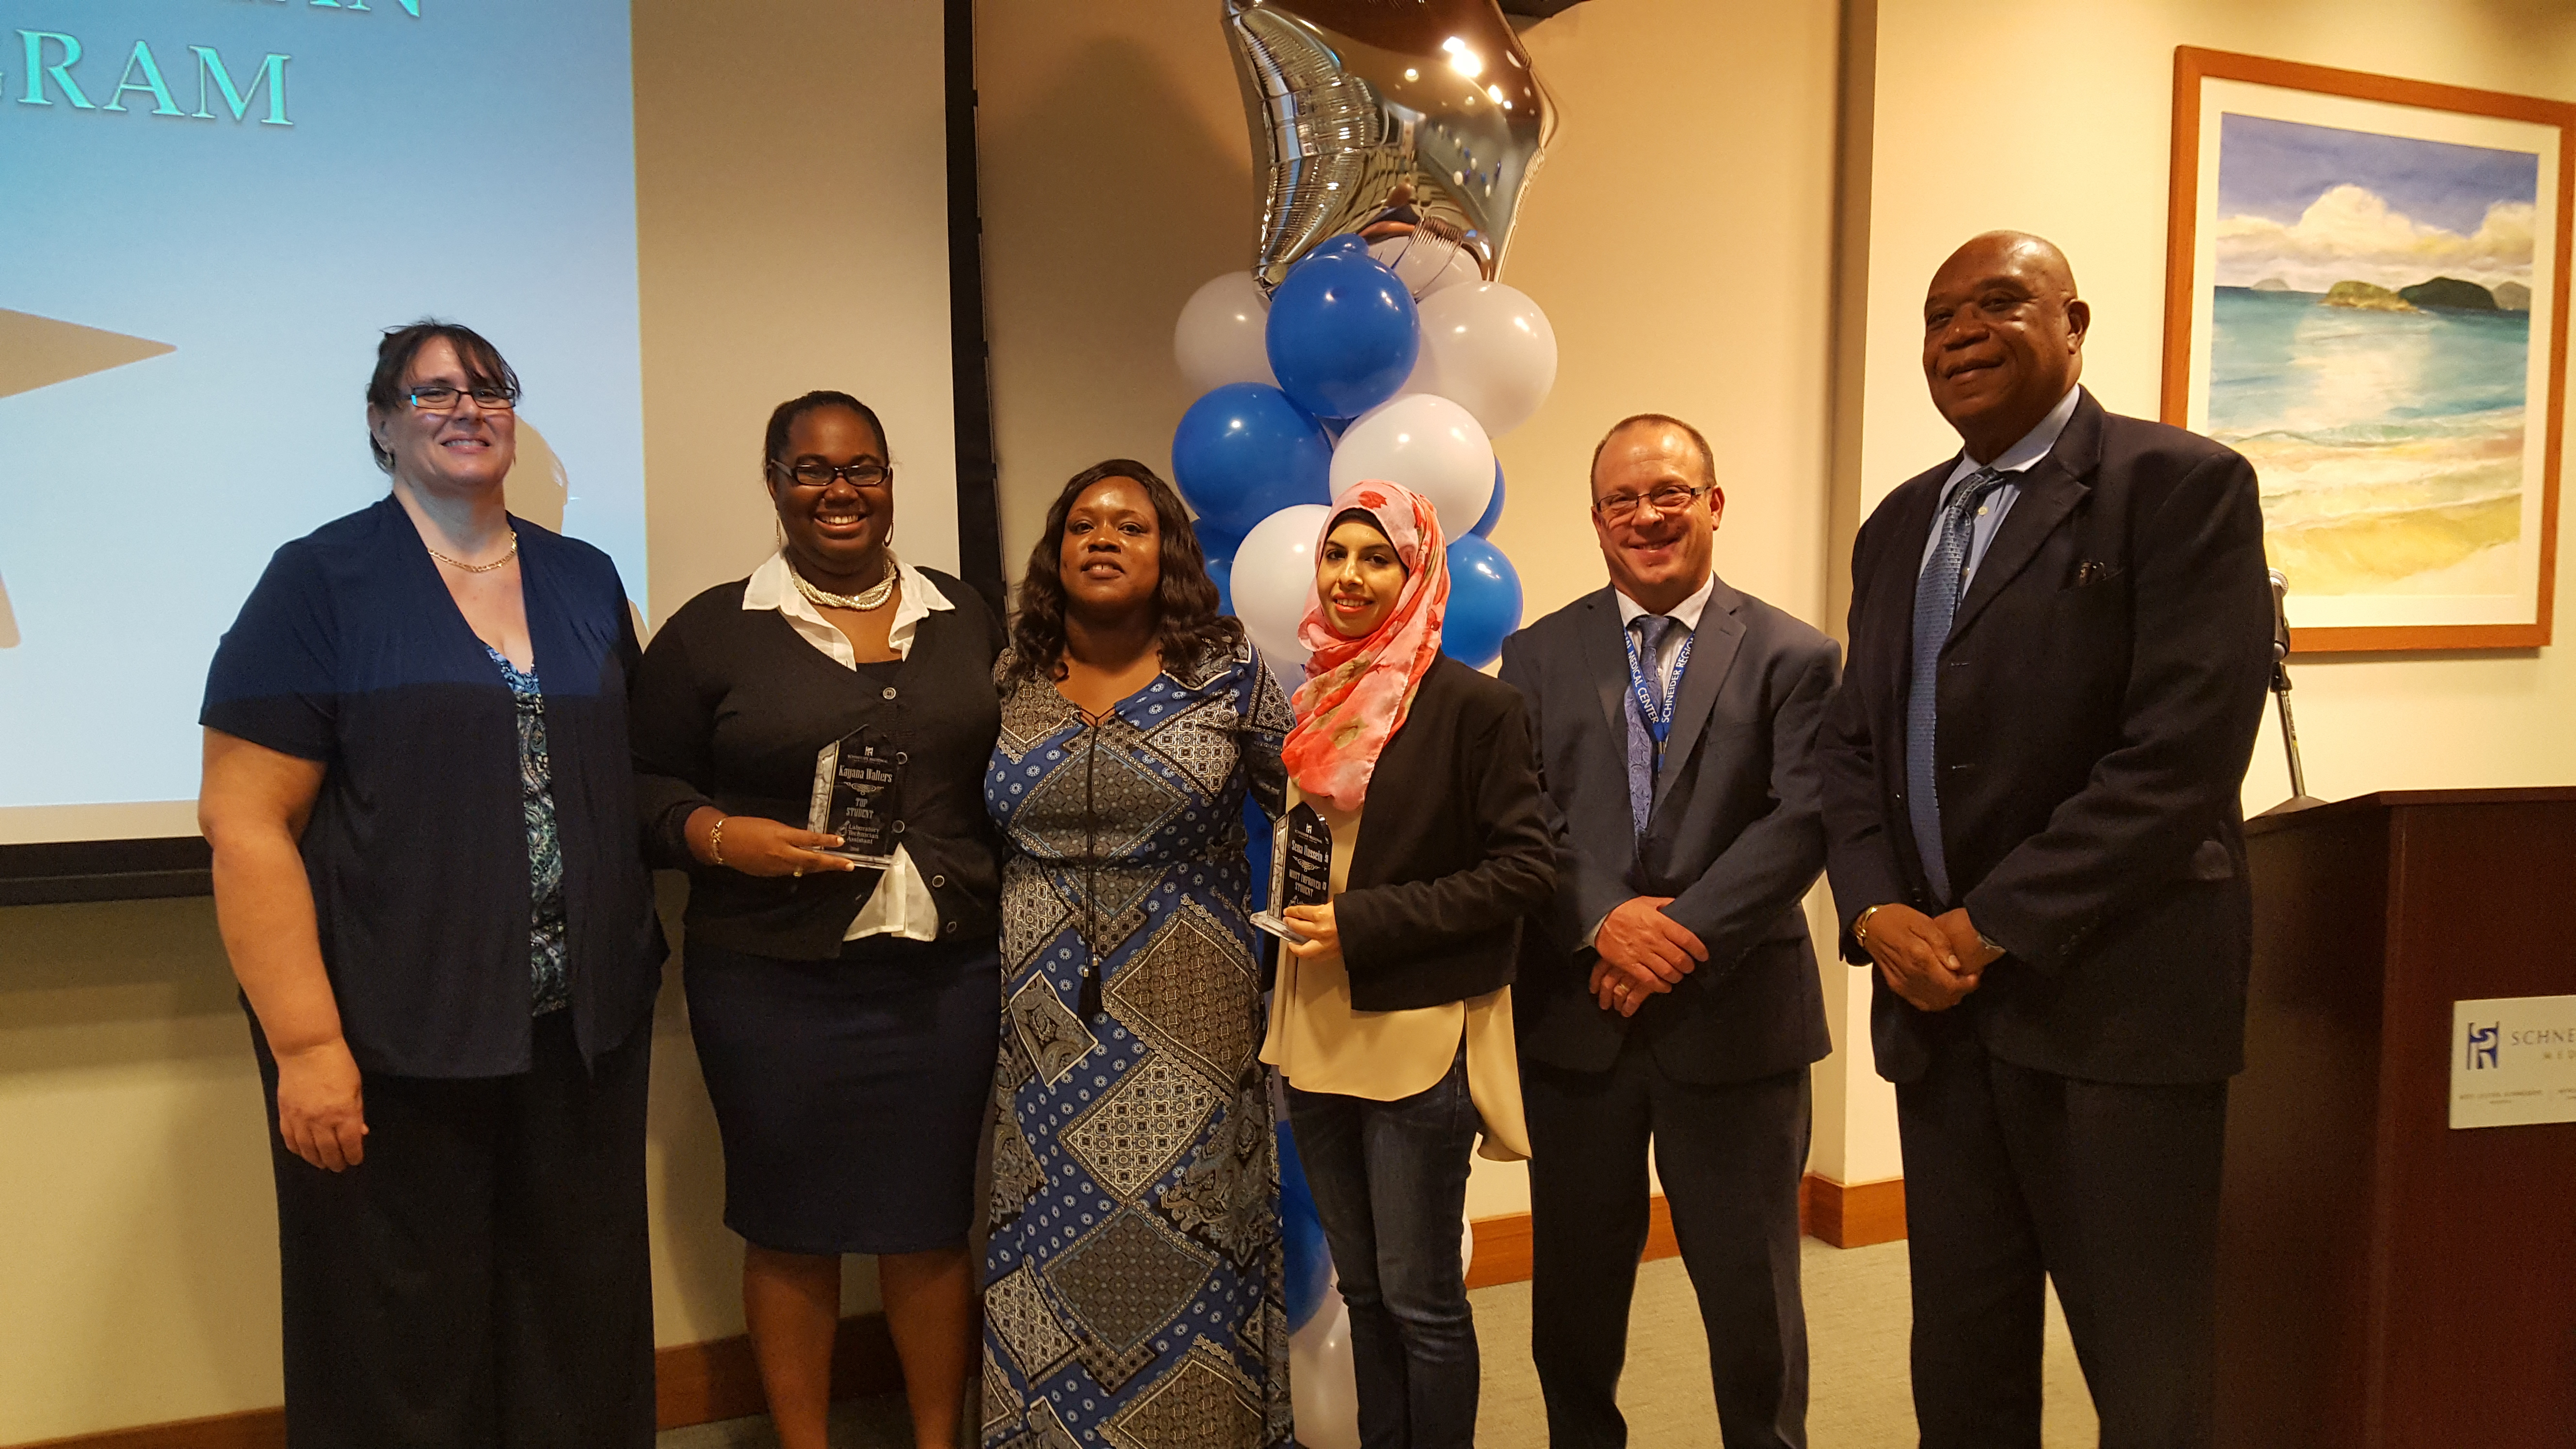 (left to right) Carol Kelly, lead medical technologist at SRMC; Kayana Walters, graduate and valedictorian of class; Mauritza Phillip, clinical laboratory director; Sena Hussein, graduate; Charles Nickerson, SRMC VP of Operations; Bernard Wheatley, SRMC CEO; (not pictured - graduate Amira Plaskett)